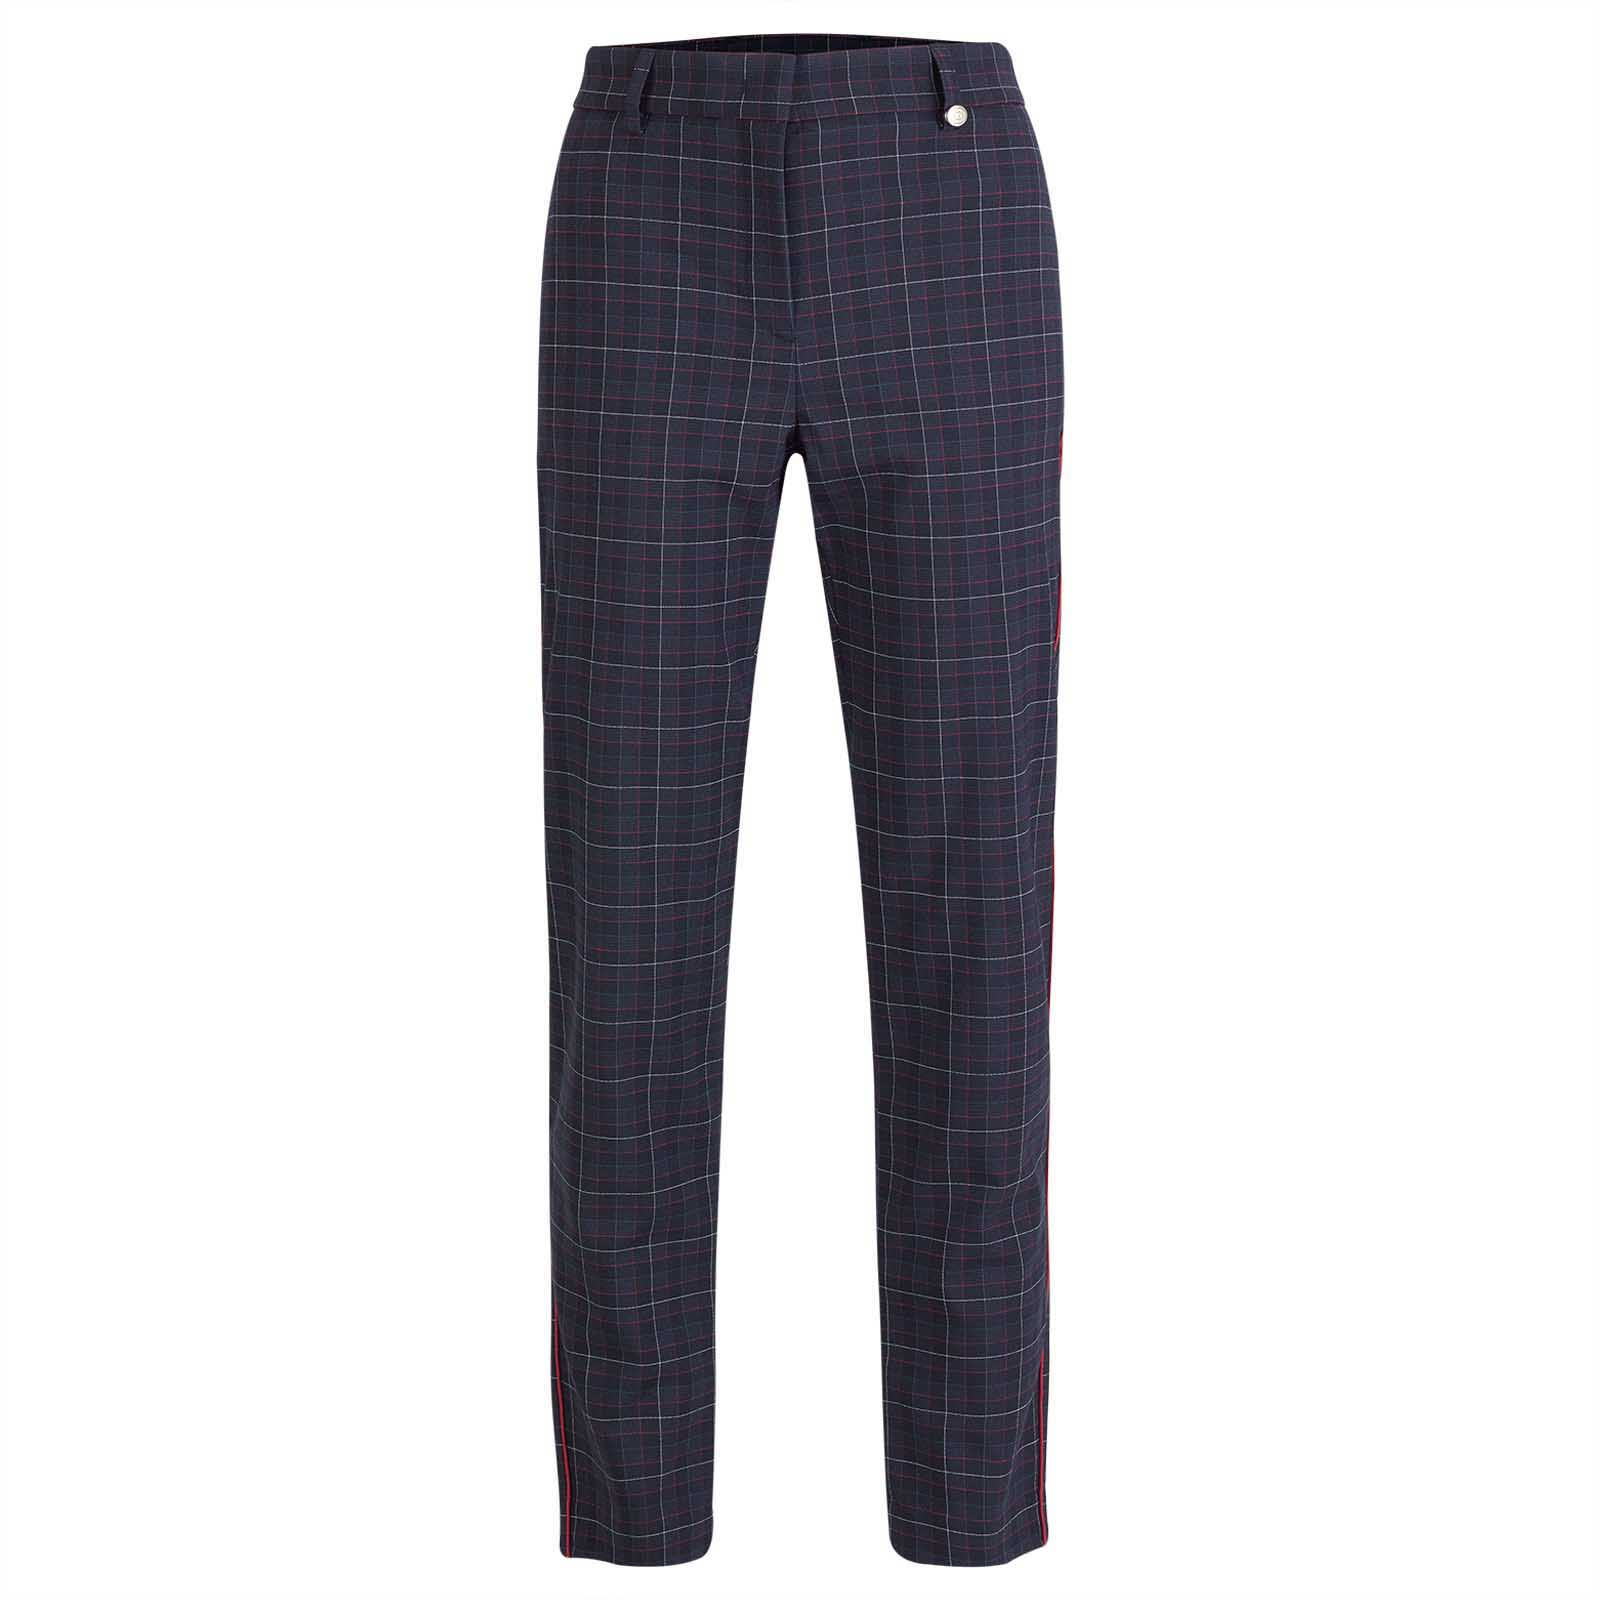 Ladies' checked golf trousers in 7/8 length from soft stretch fabric